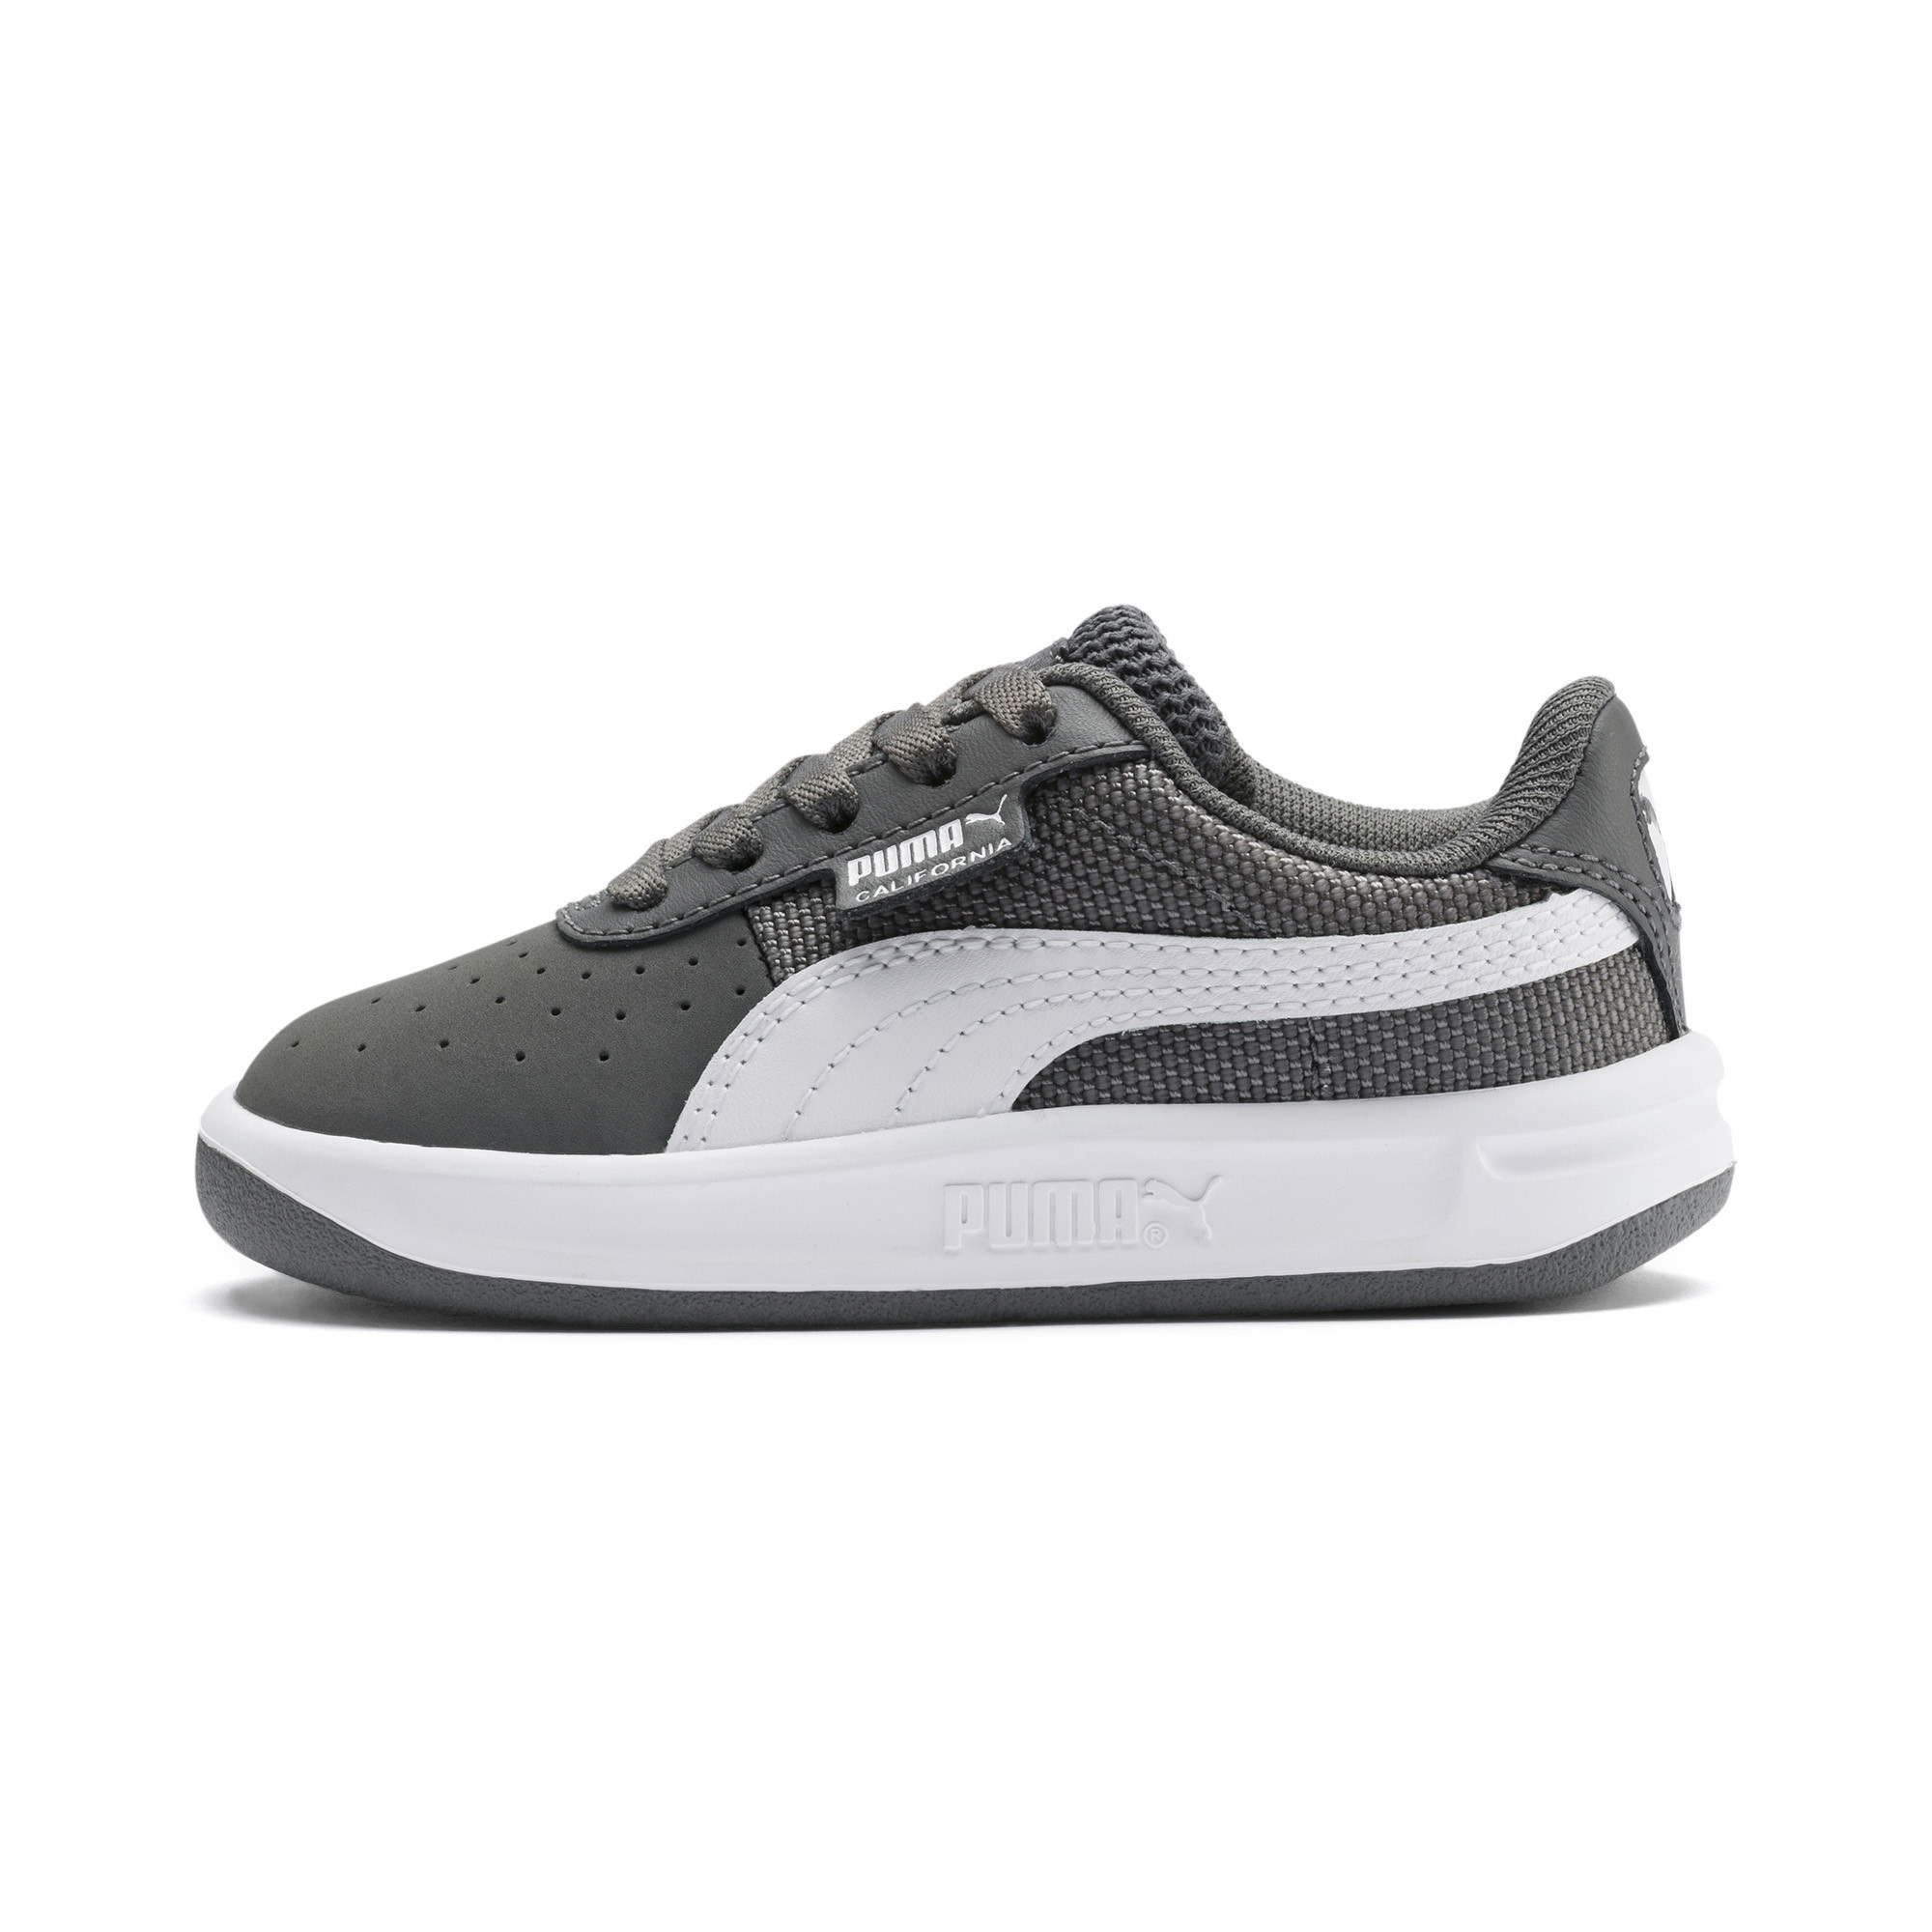 PUMA-California-Toddler-Shoes-Kids-Shoe-Kids thumbnail 16